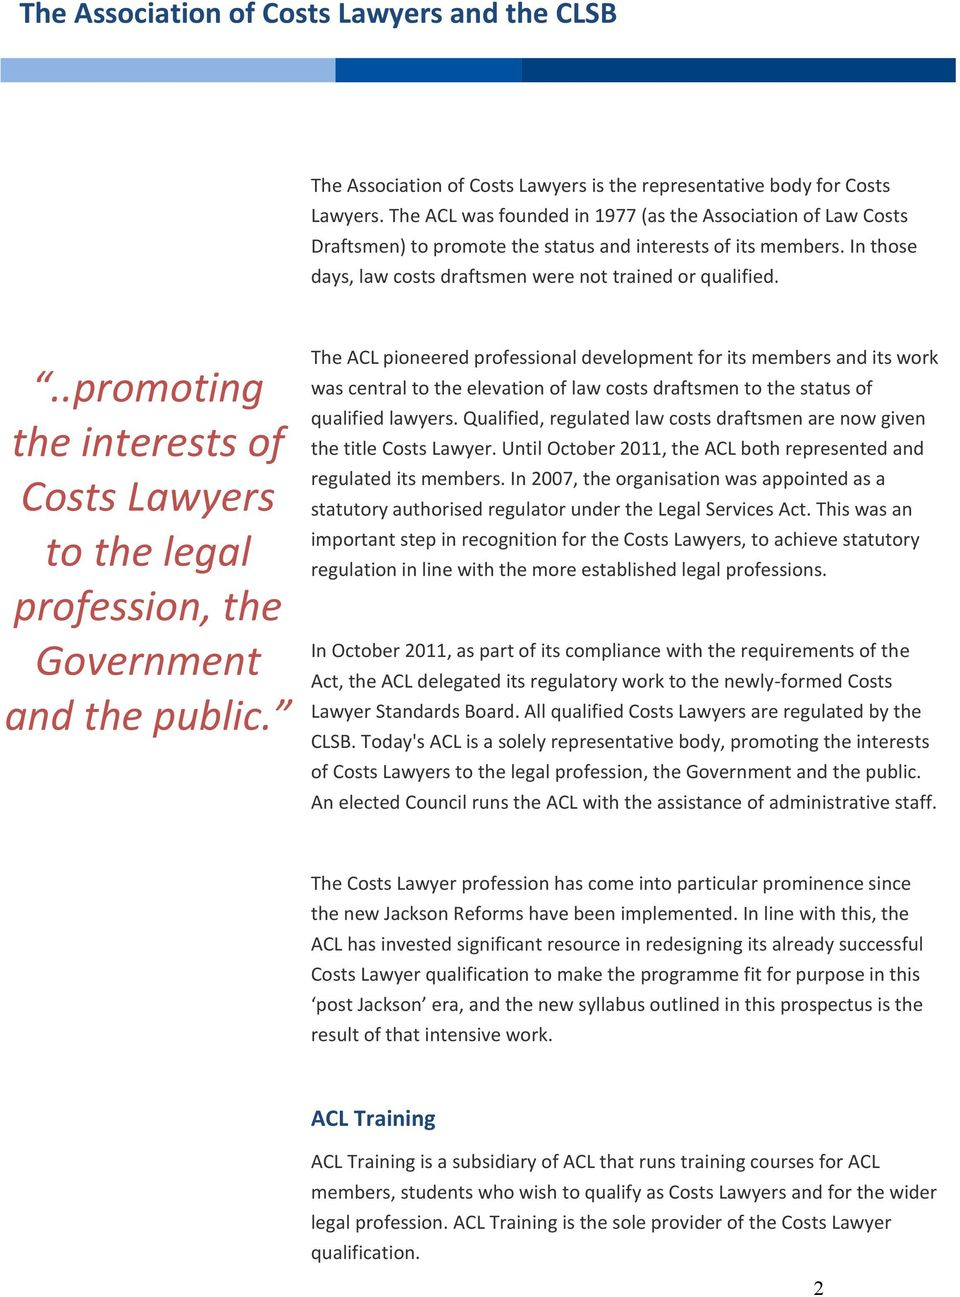 ..promoting the interests of Costs Lawyers to the legal profession, the Government and the public.